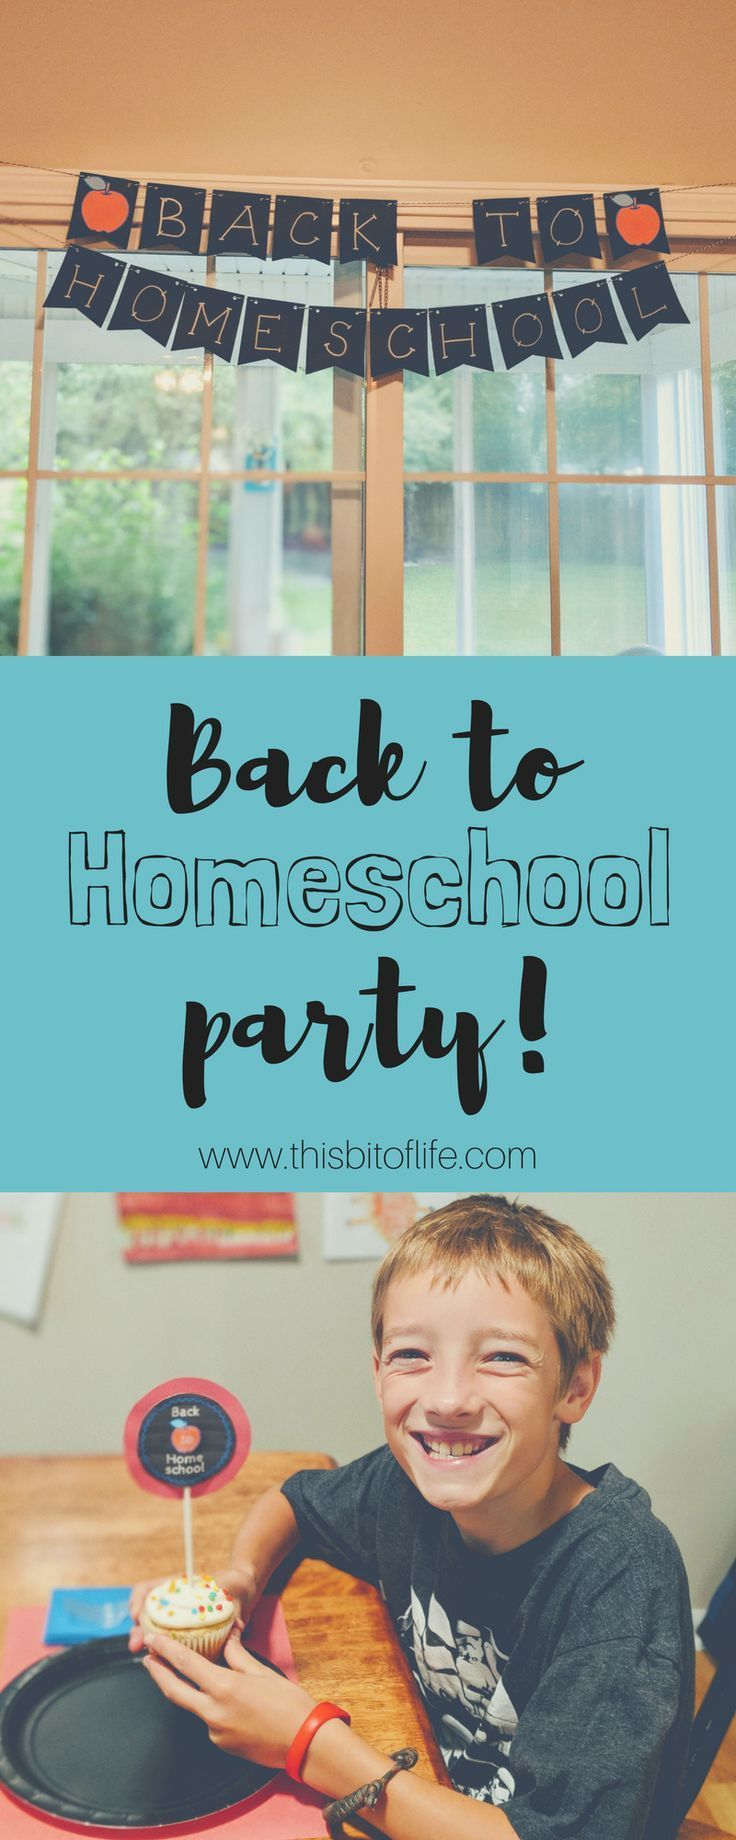 Back to Homeschool Party - This Bit of Life